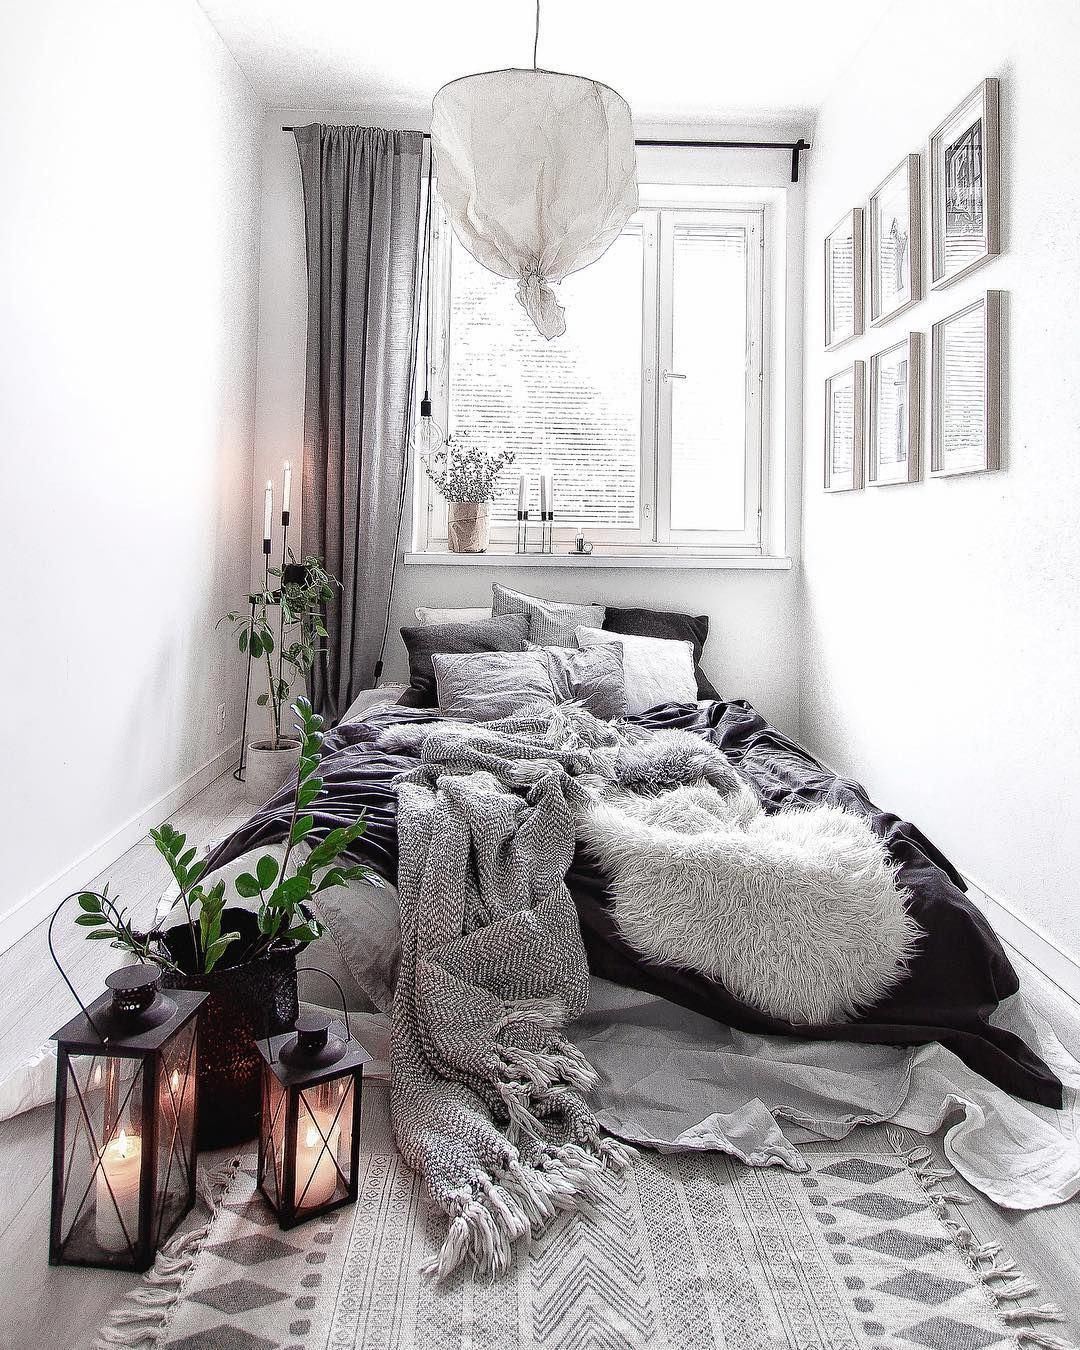 Bohemian Decor Houzz Vintageindustrialfurniture Bedroom Design Apartment Decor Bohemian Bedroom Design